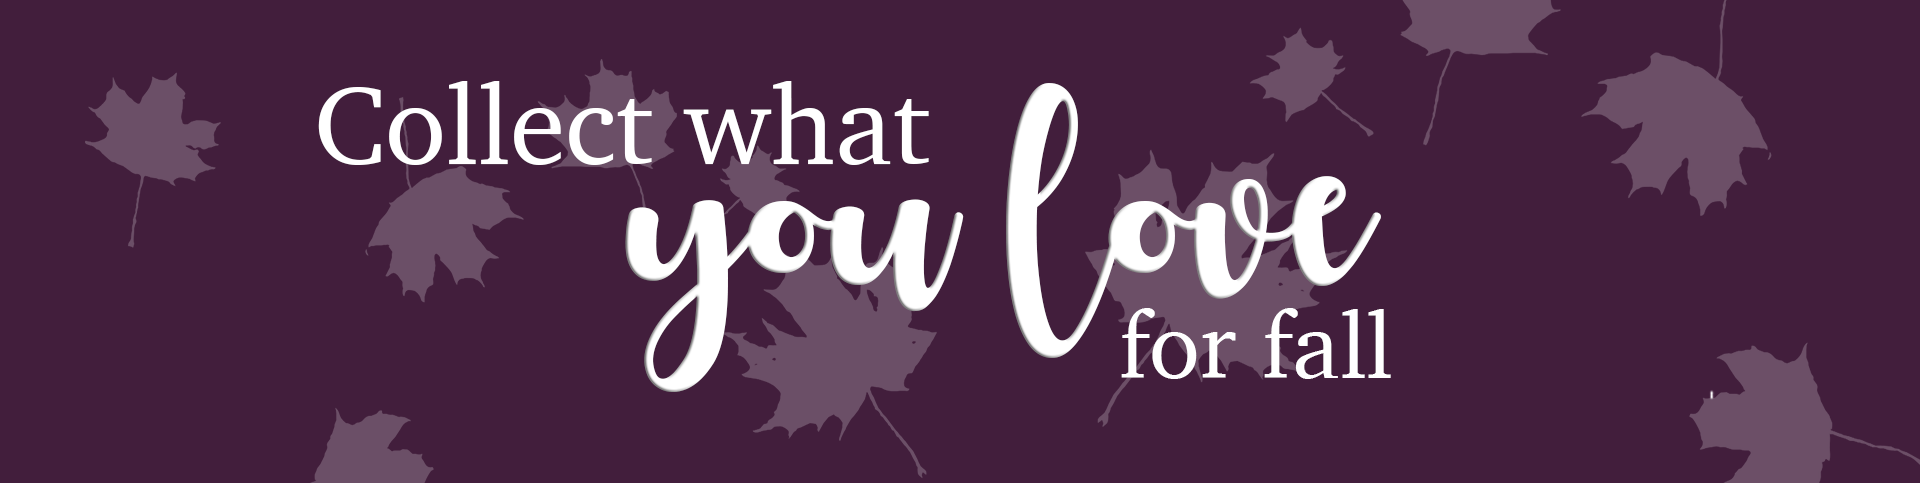 Collect what you love for fall